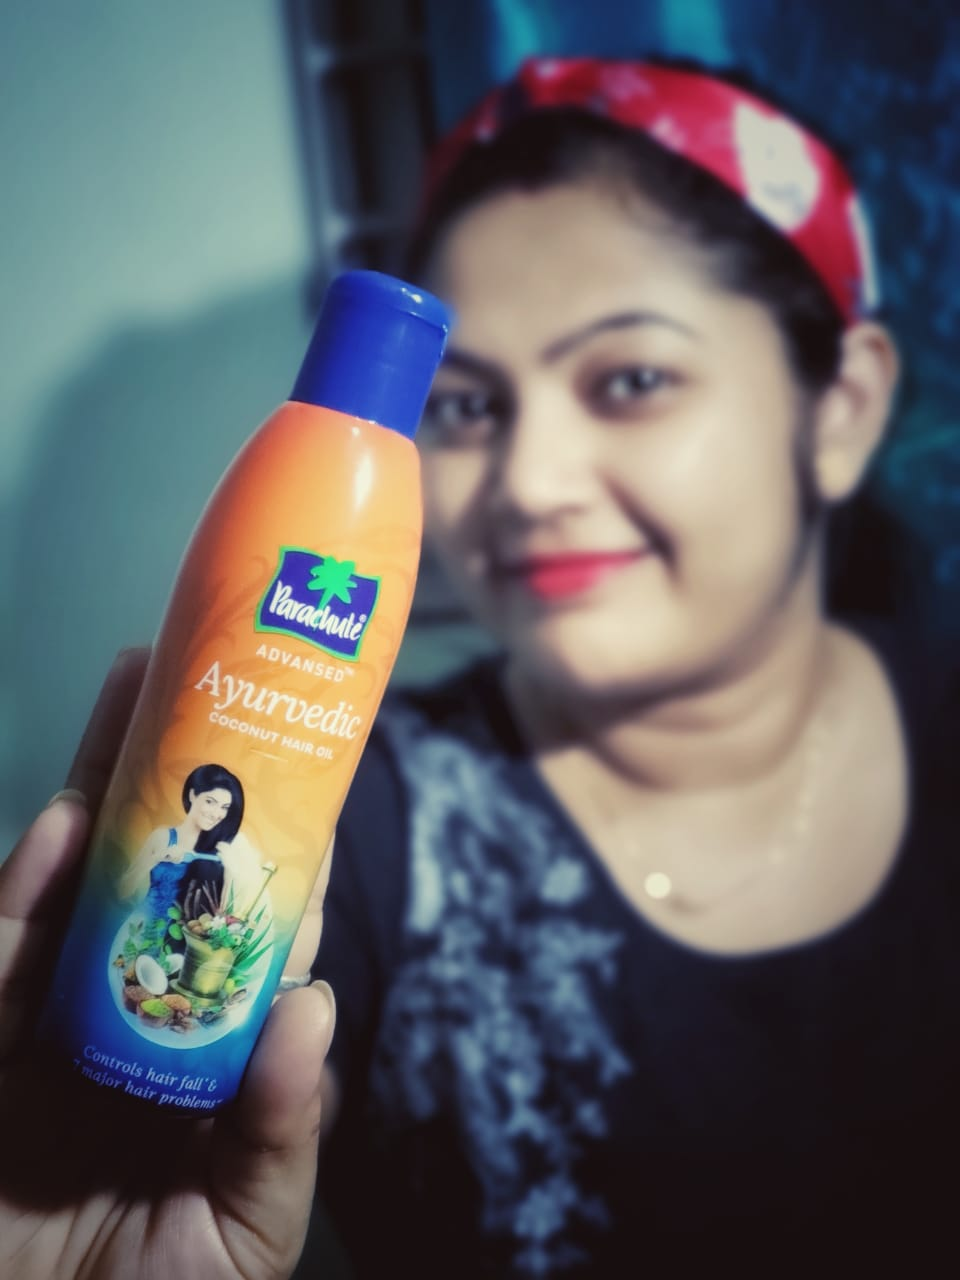 Parachute Advansed Ayurvedic Coconut Hair Oil pic 1-Nice hair oil…-By indian_girl_pinki